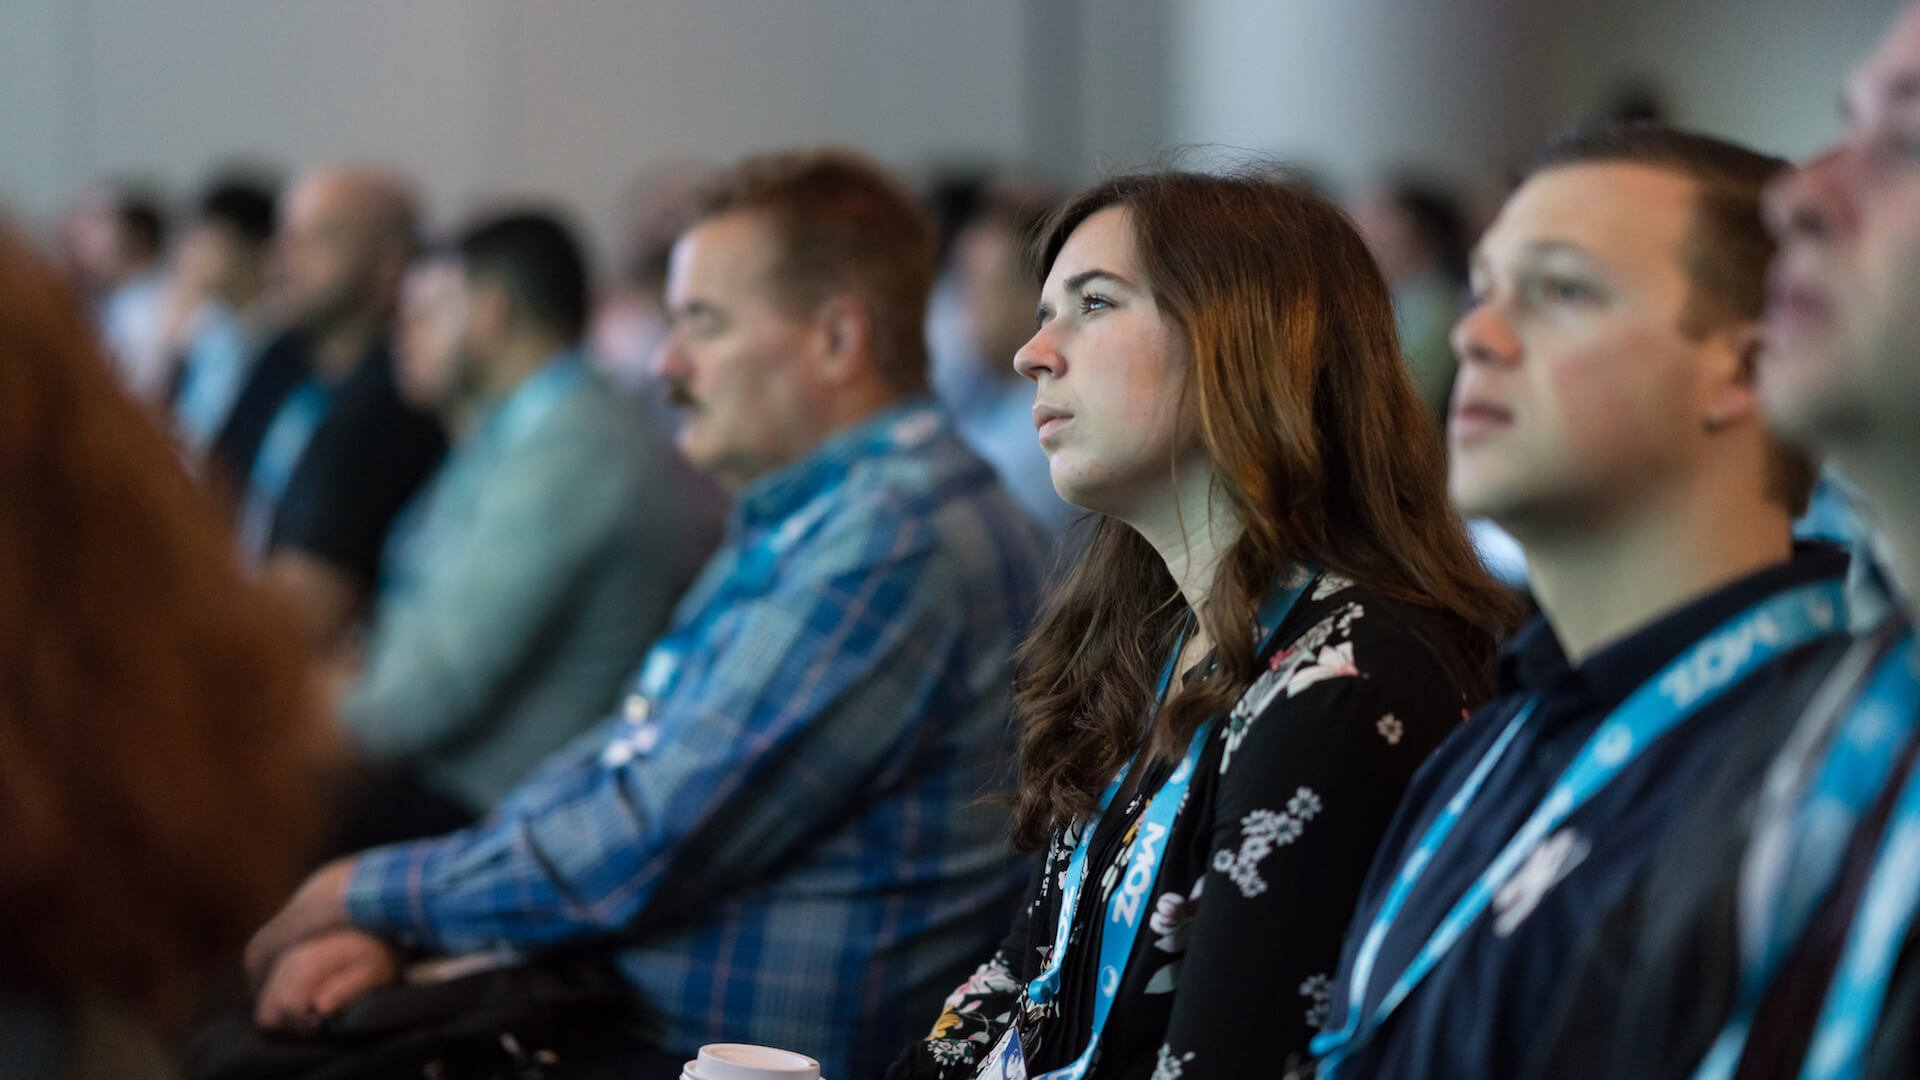 Act fast! SMX West Super Early Bird rates end Saturday night!